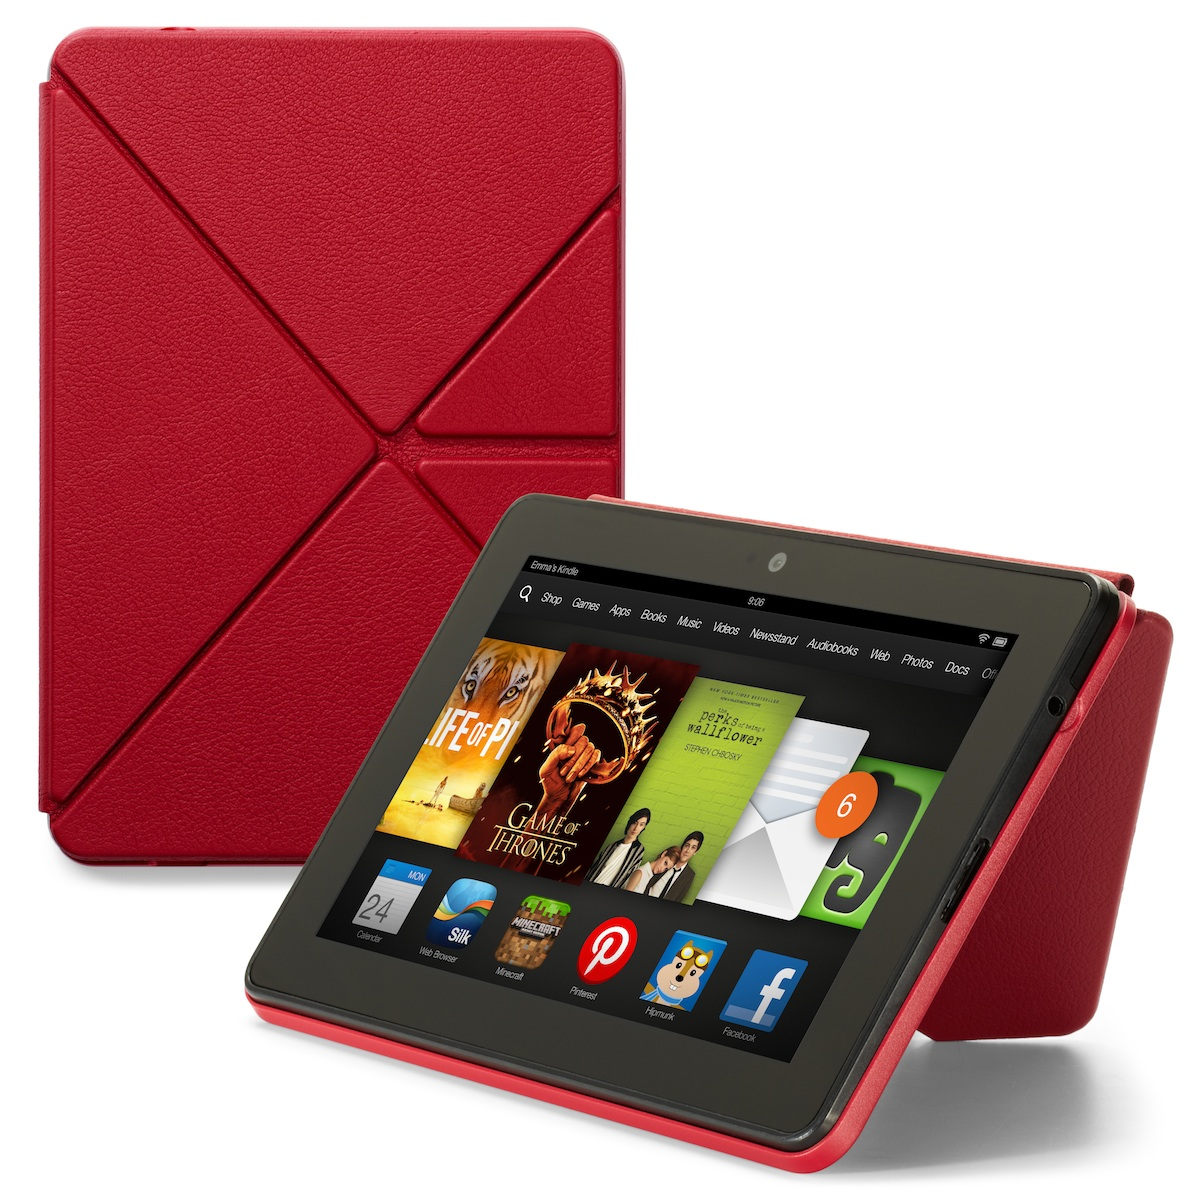 First look: Amazon's Kindle Fire 'Origami' stand in action